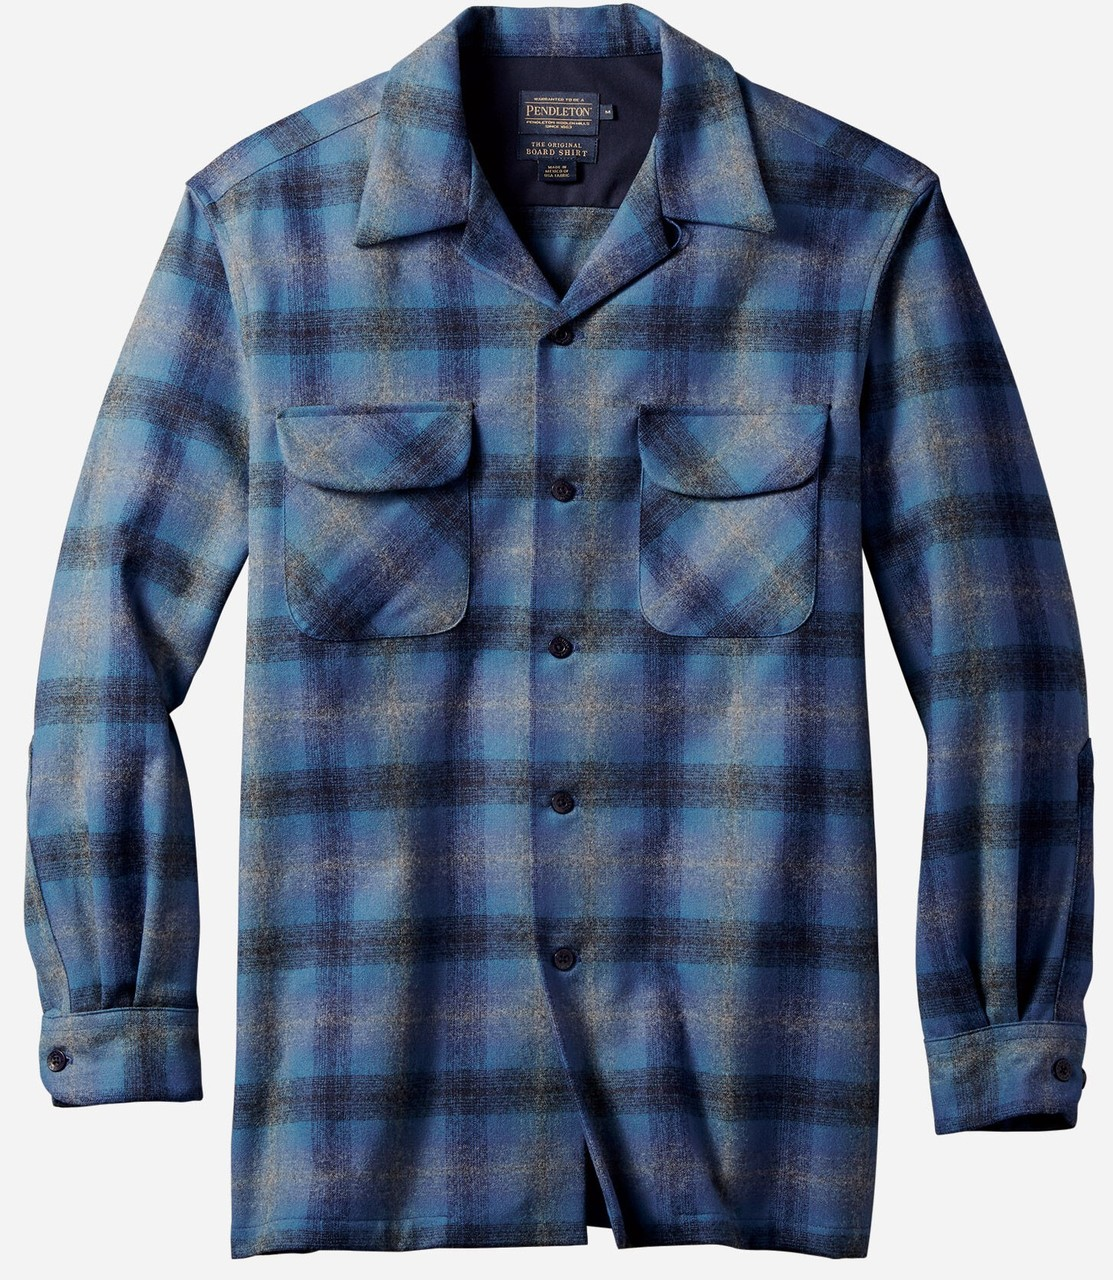 Pendleton board shirt blue ombre